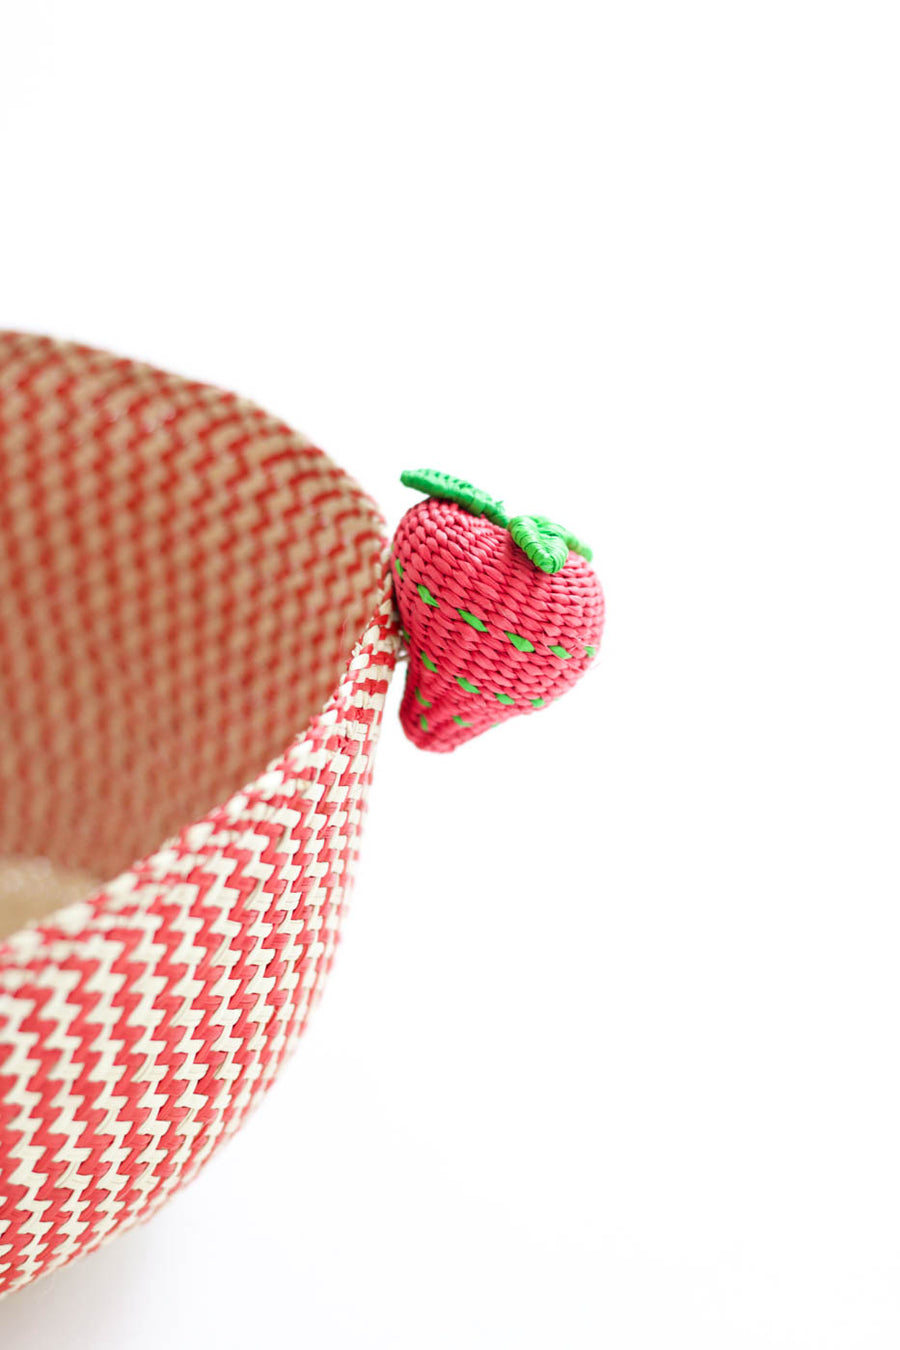 Palm Strawberry Basket